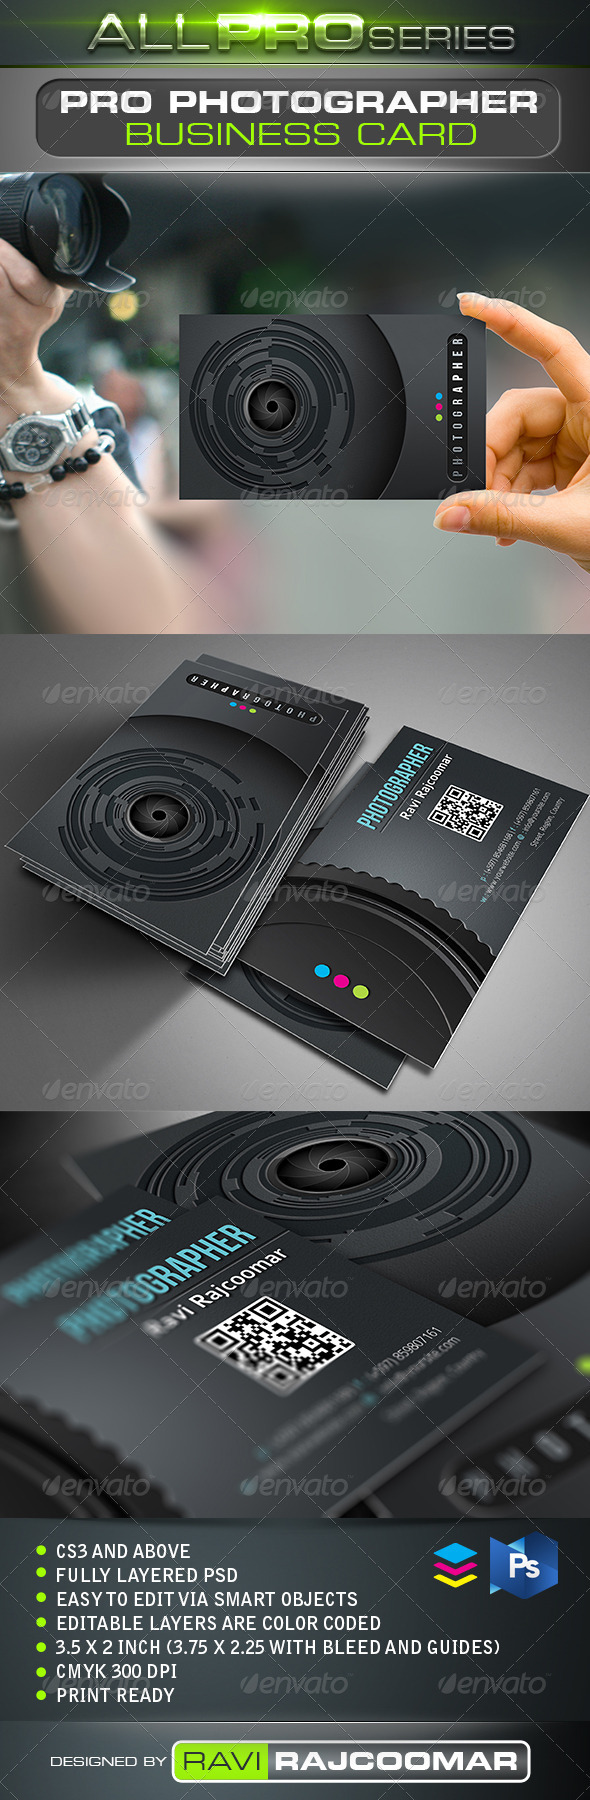 Pro Photographer Business Card - Industry Specific Business Cards